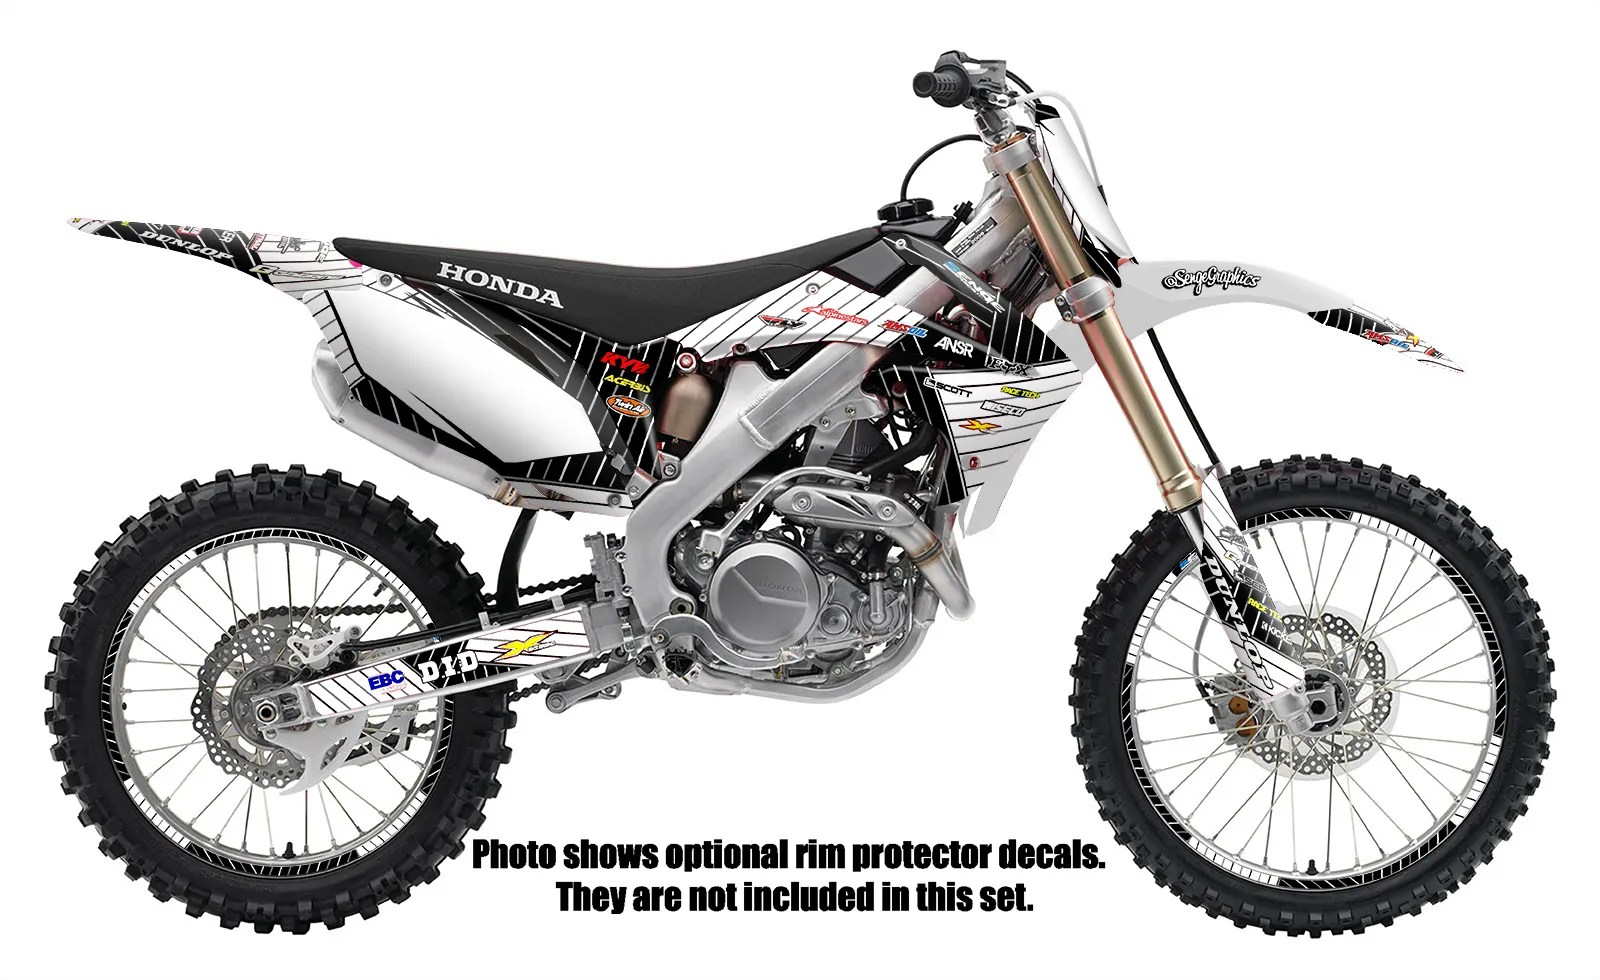 2002 2003 CR 125 250 R GRAPHICS CR125 CR250CR250R CR125R